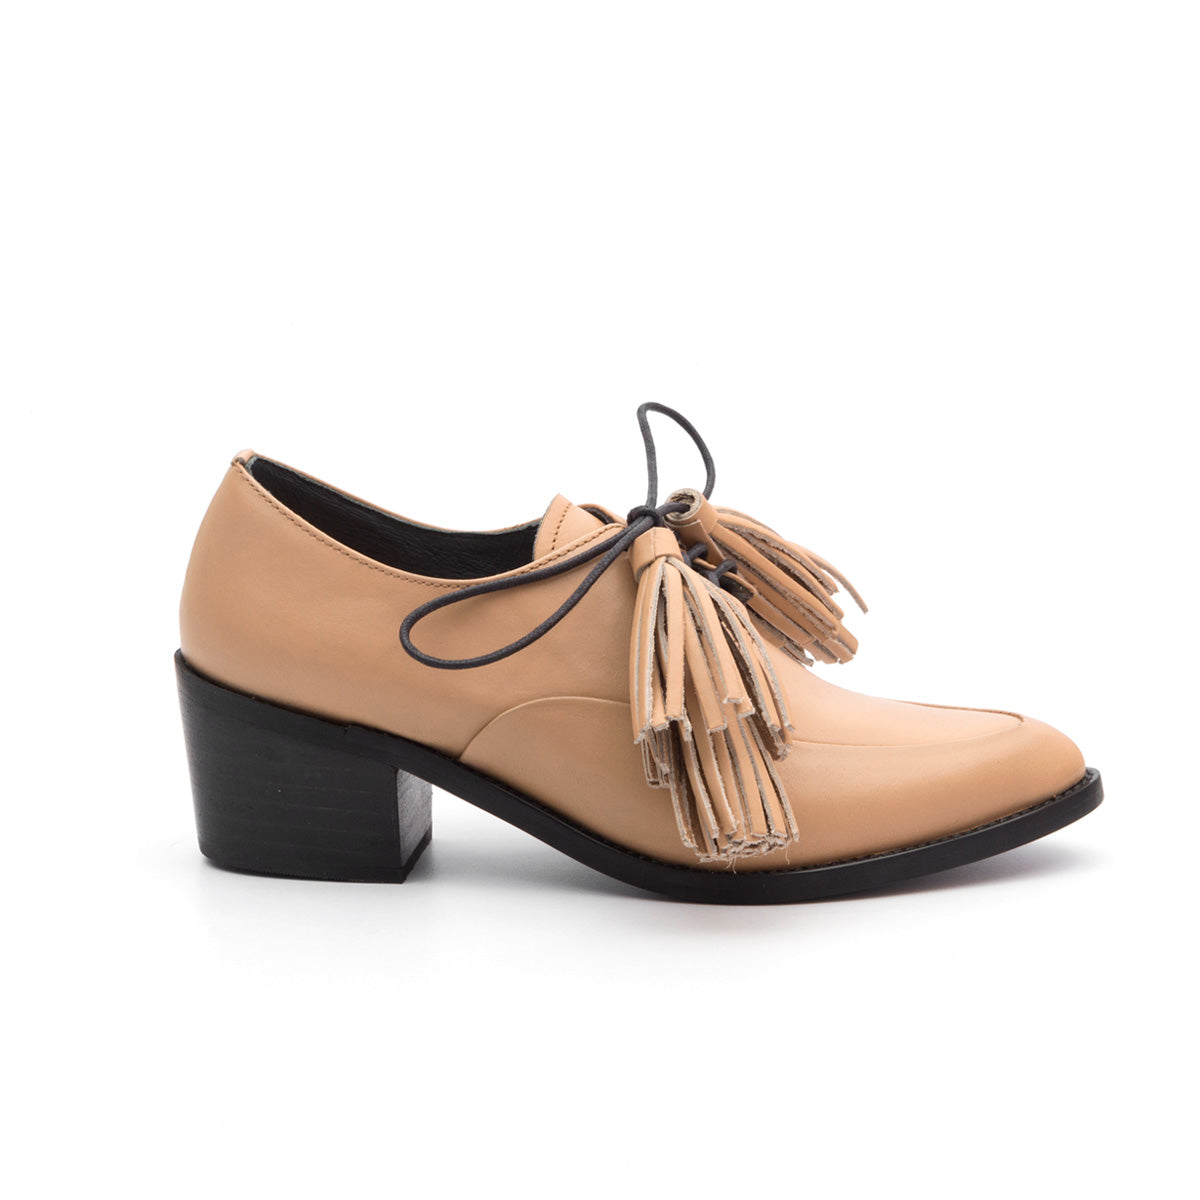 Teassel Loafer Nude